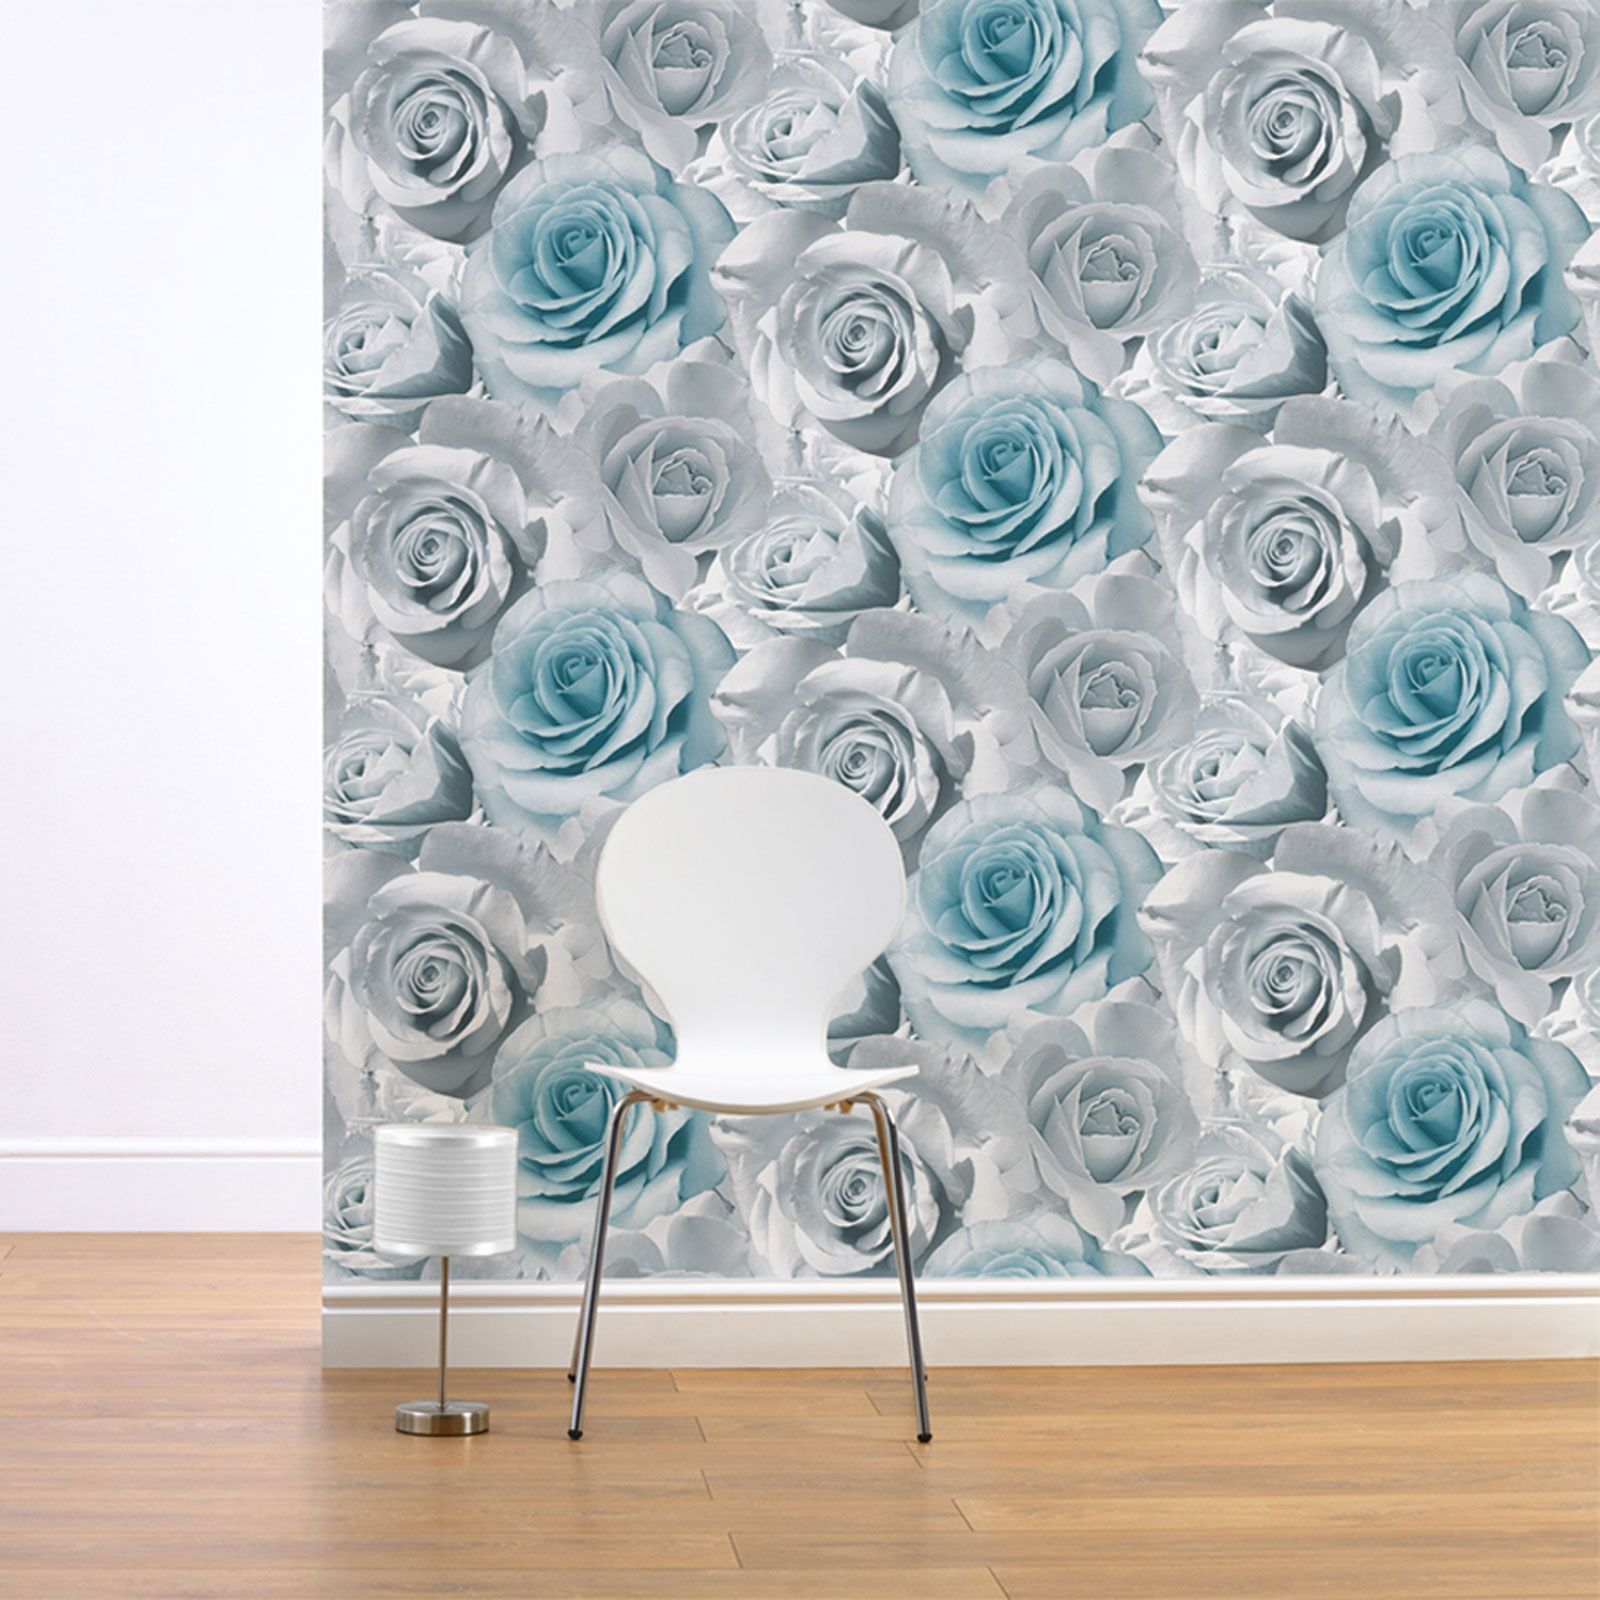 Shabby Chic Wall Decor Shabby Chic Floral Wallpaper In Various Designs Wall Decor New Ebay